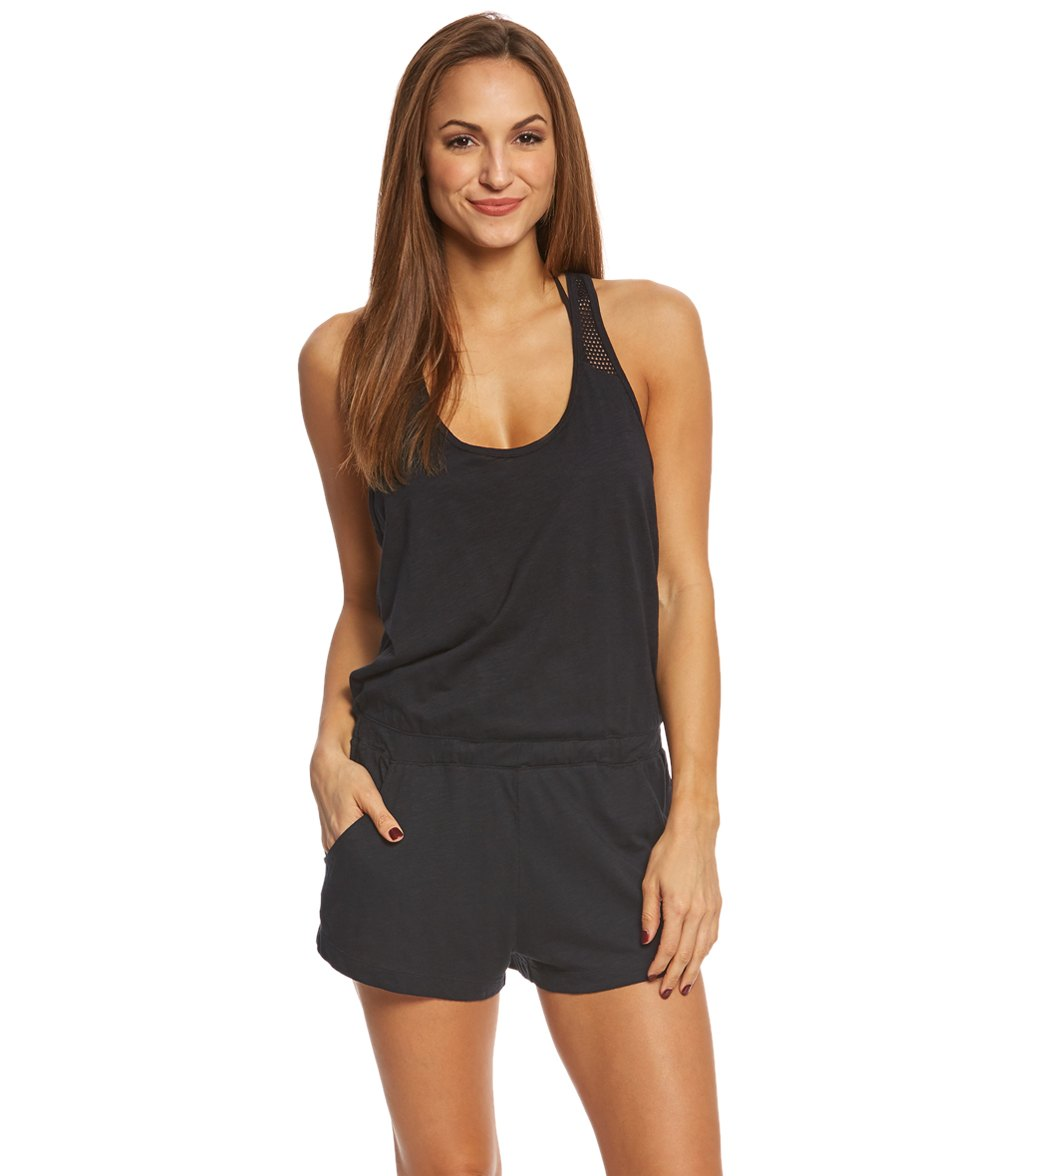 624d76c5f6c24 ... Speedo Women's Romper Cover Up. Play Video. MODEL MEASUREMENTS